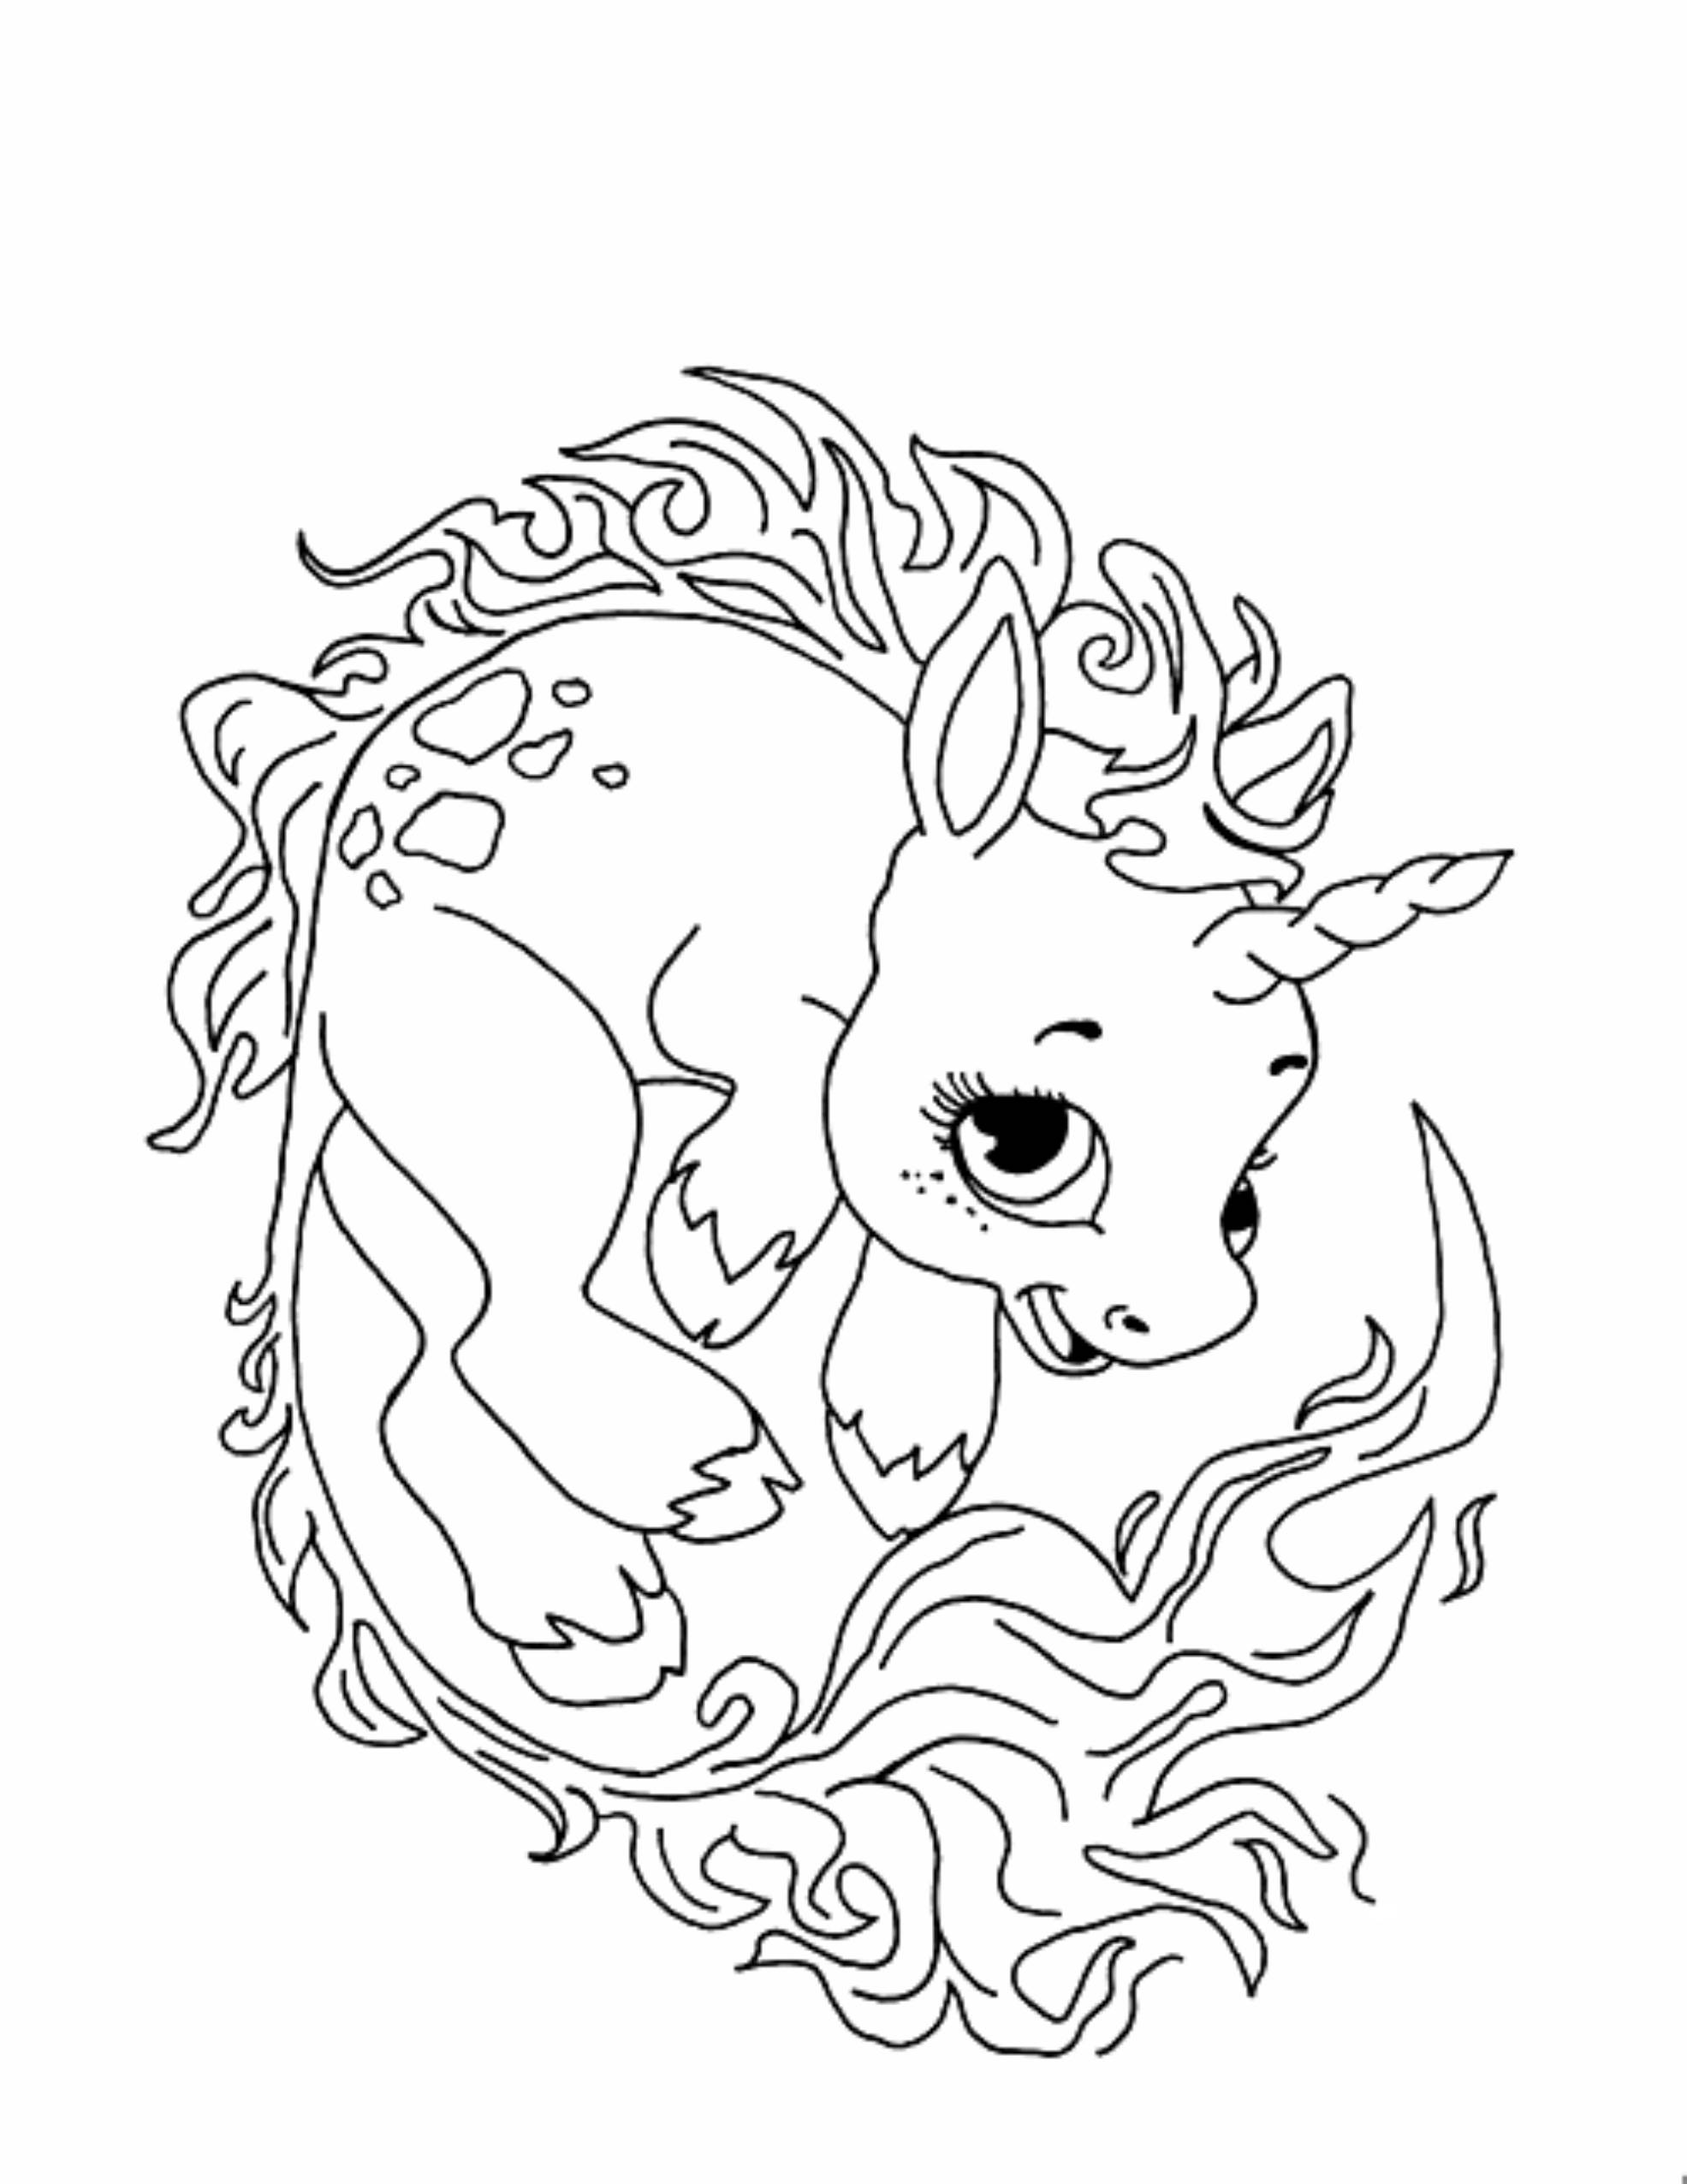 coloring page of unicorn adorable unicorn coloring pages for girls and adults updated page coloring unicorn of